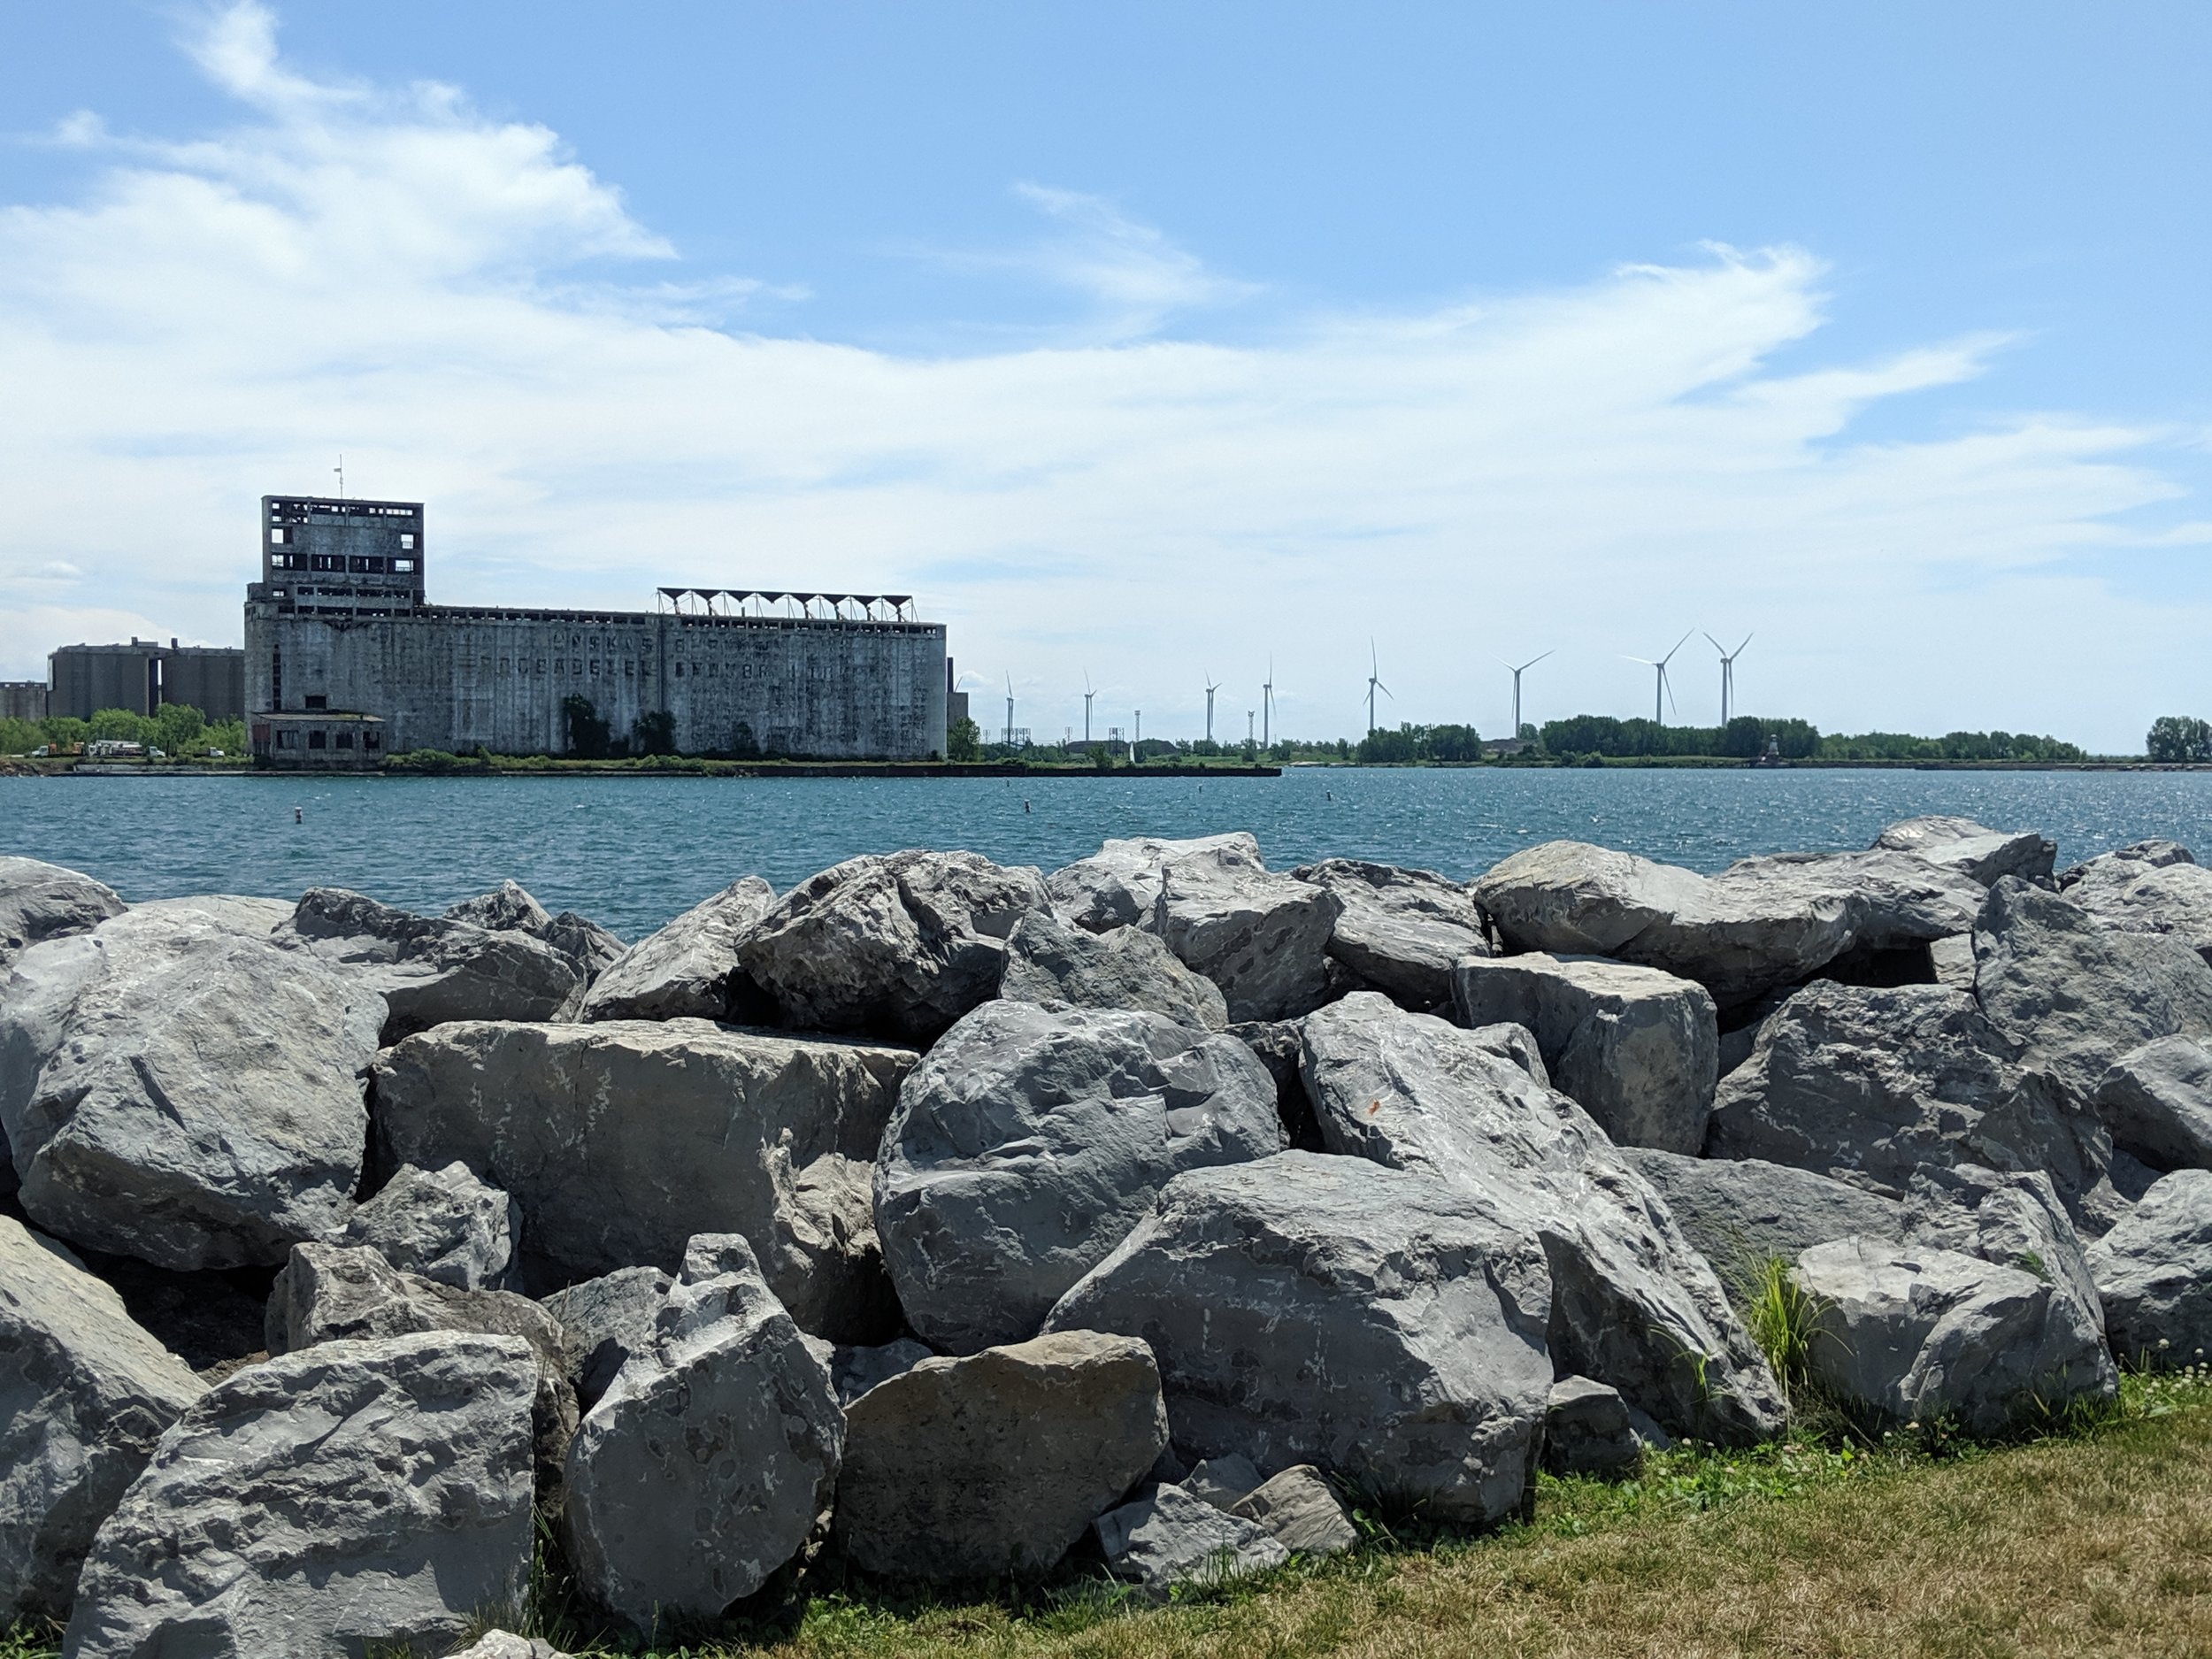 Here is a great shot of Old and New Buffalo. The grain elevators on the left and the wind turbines on the right. They coexist beautifully don't you think?